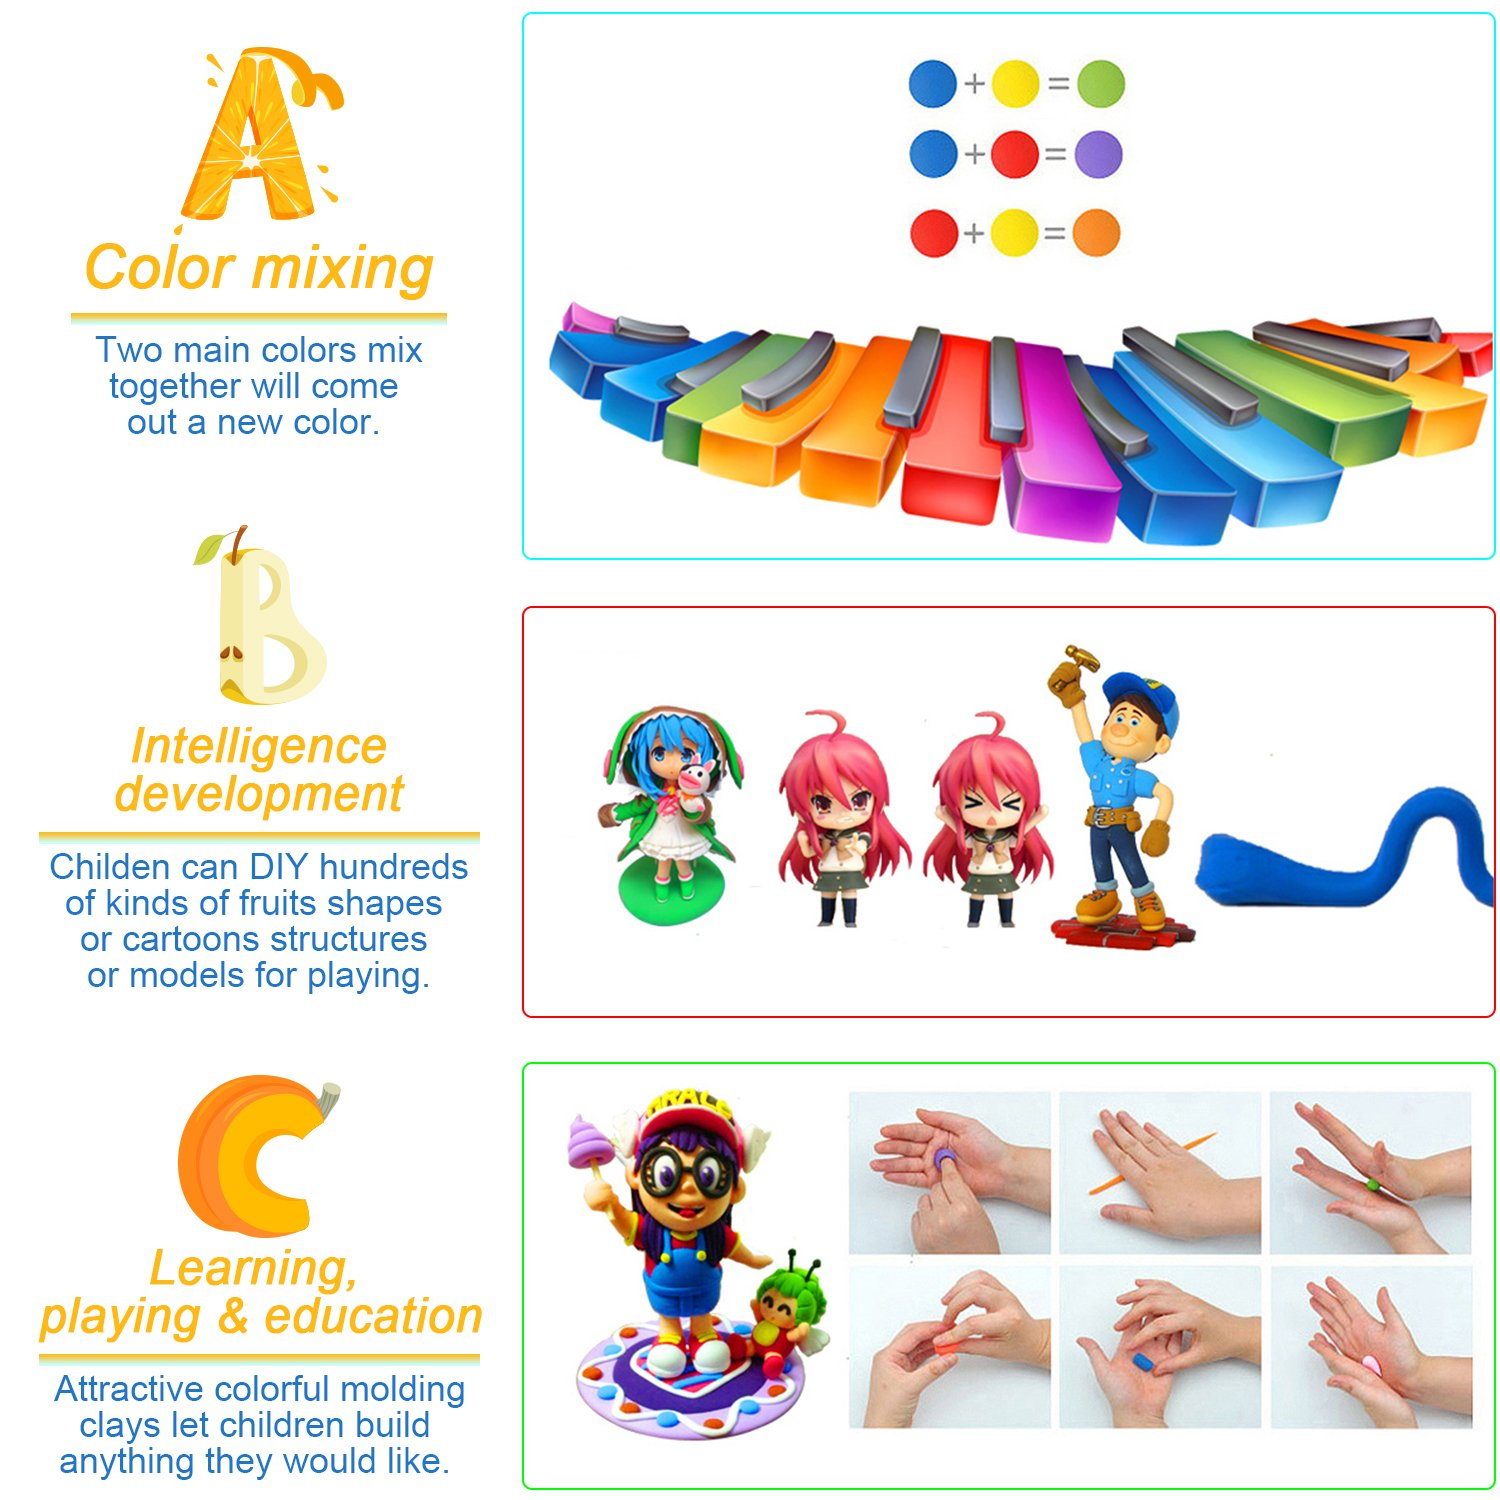 amazoncom sysrion air dry clay 24 colors ultra light modeling clay magic crafts kit with vegetables and fruits modes toys u0026 games